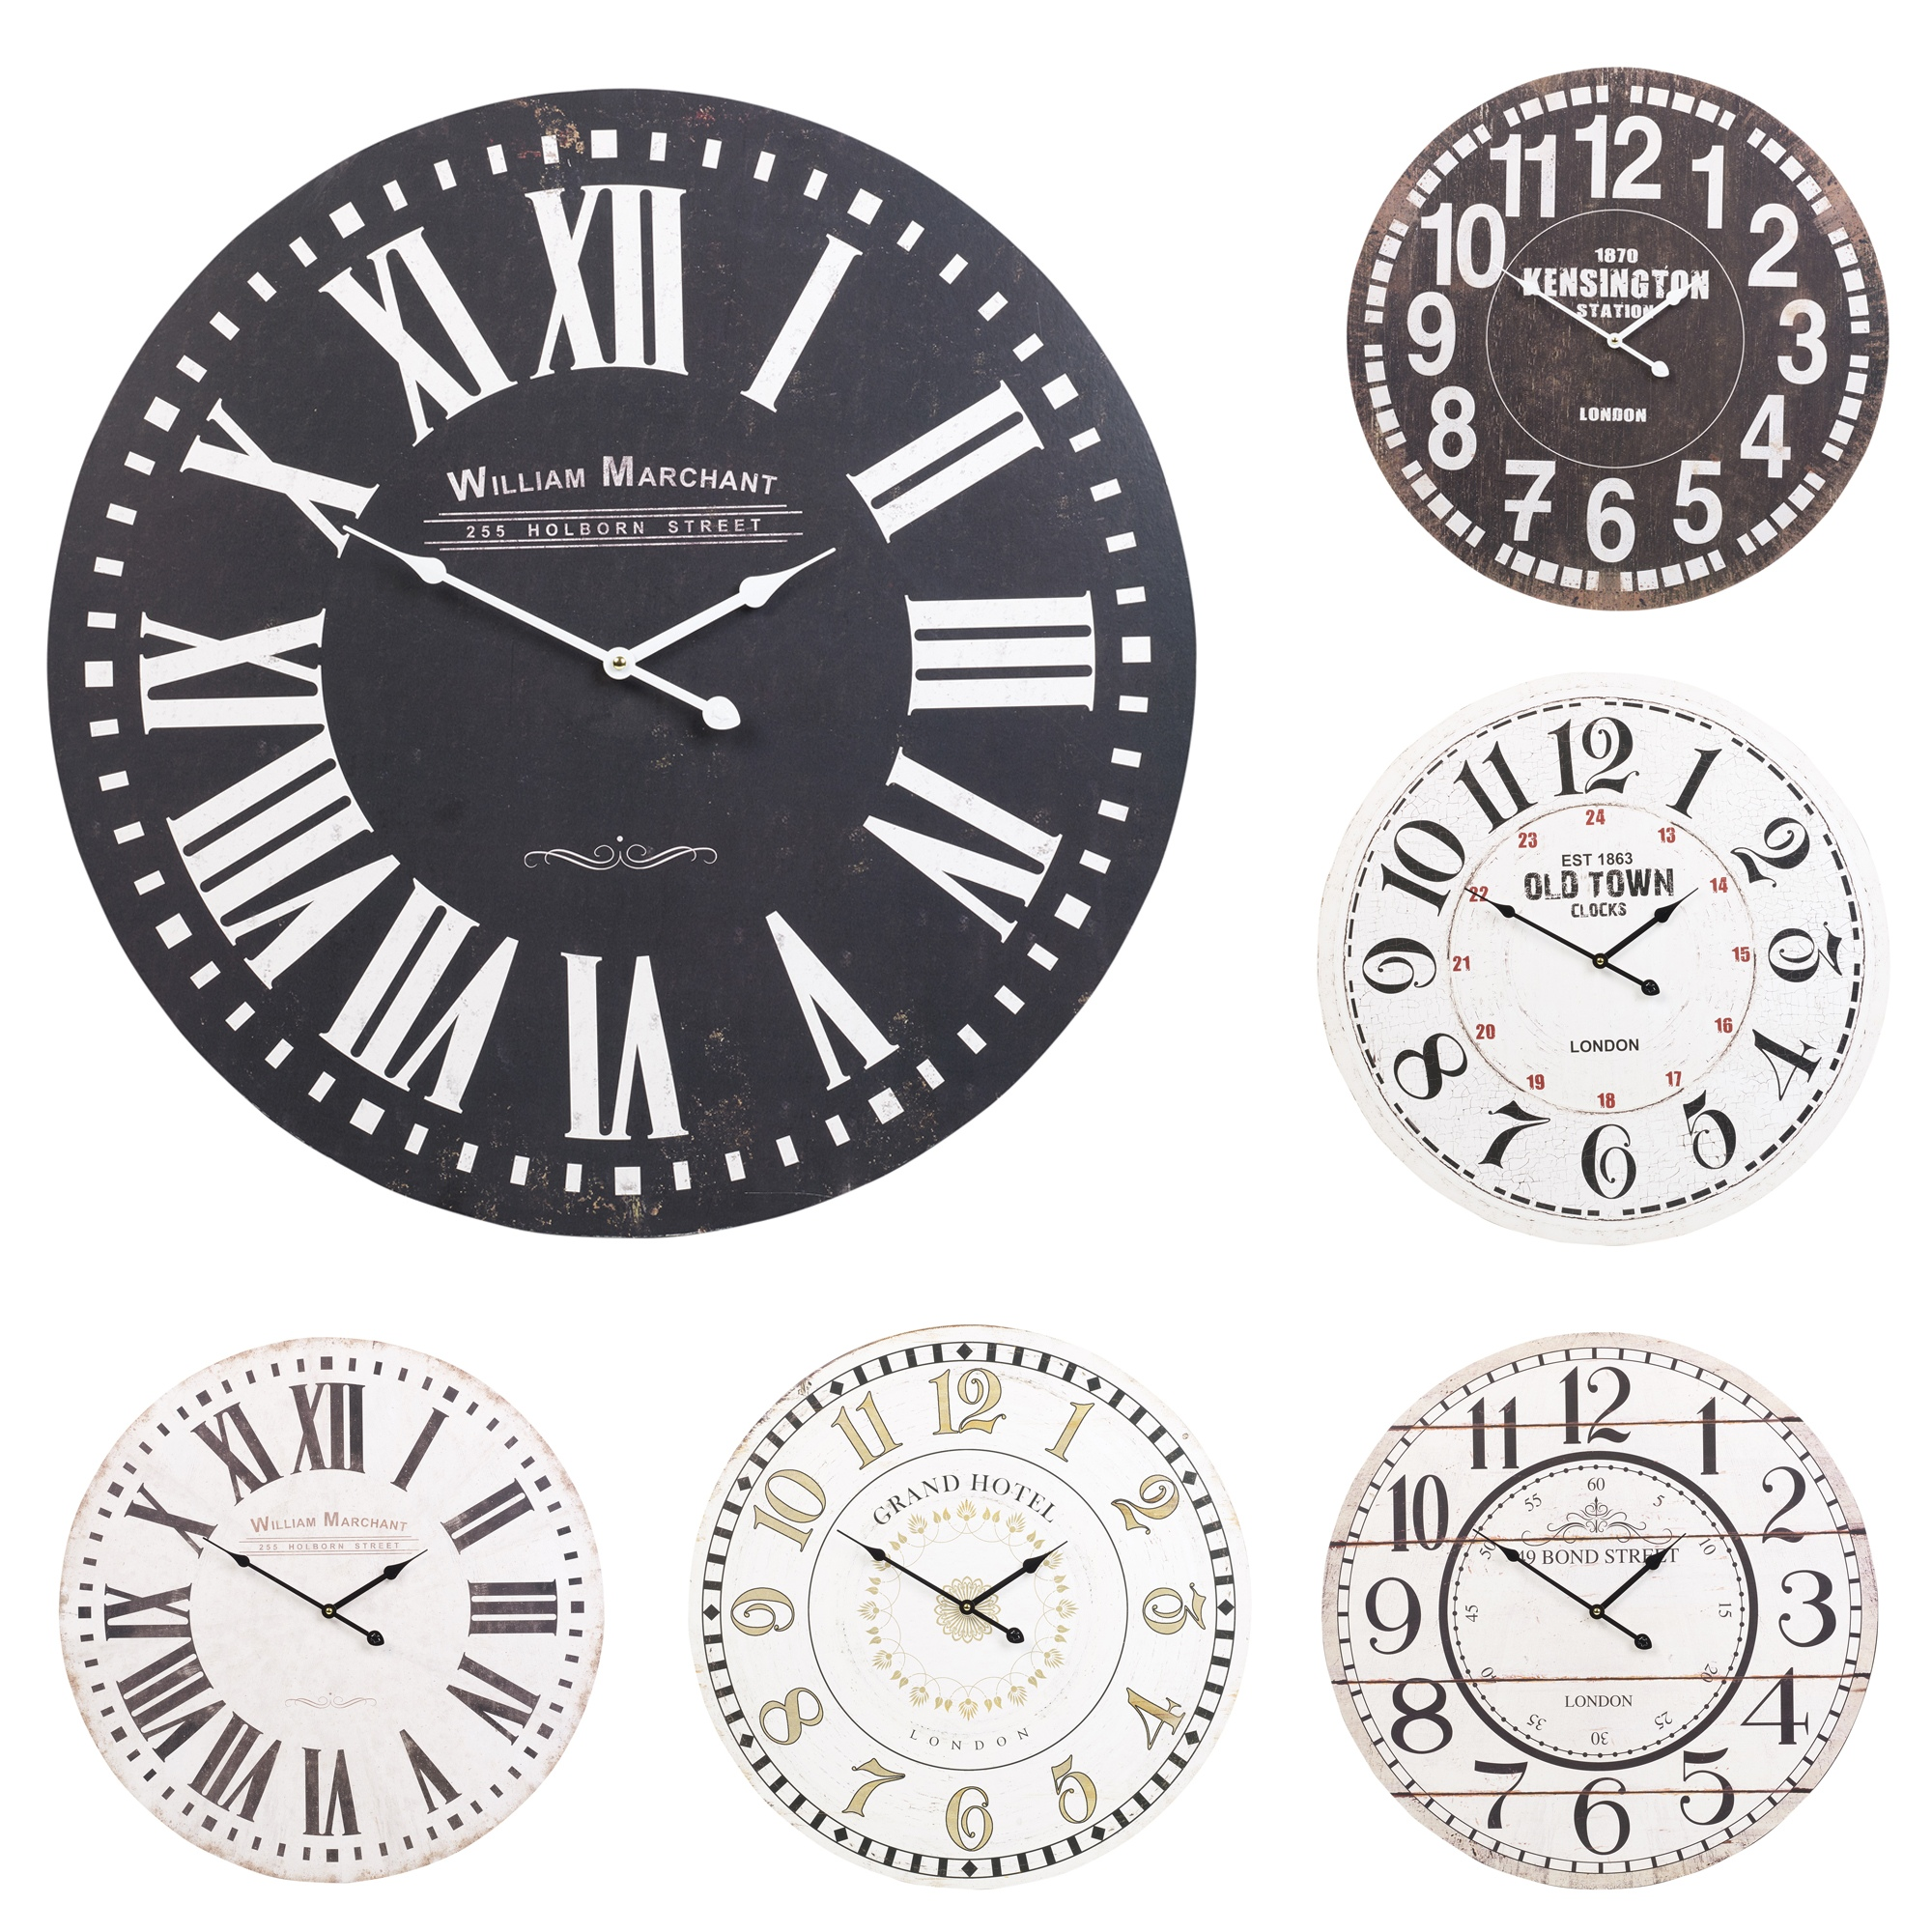 60cm extra large round wooden wall clock vintage retro antique distressed chic ebay. Black Bedroom Furniture Sets. Home Design Ideas